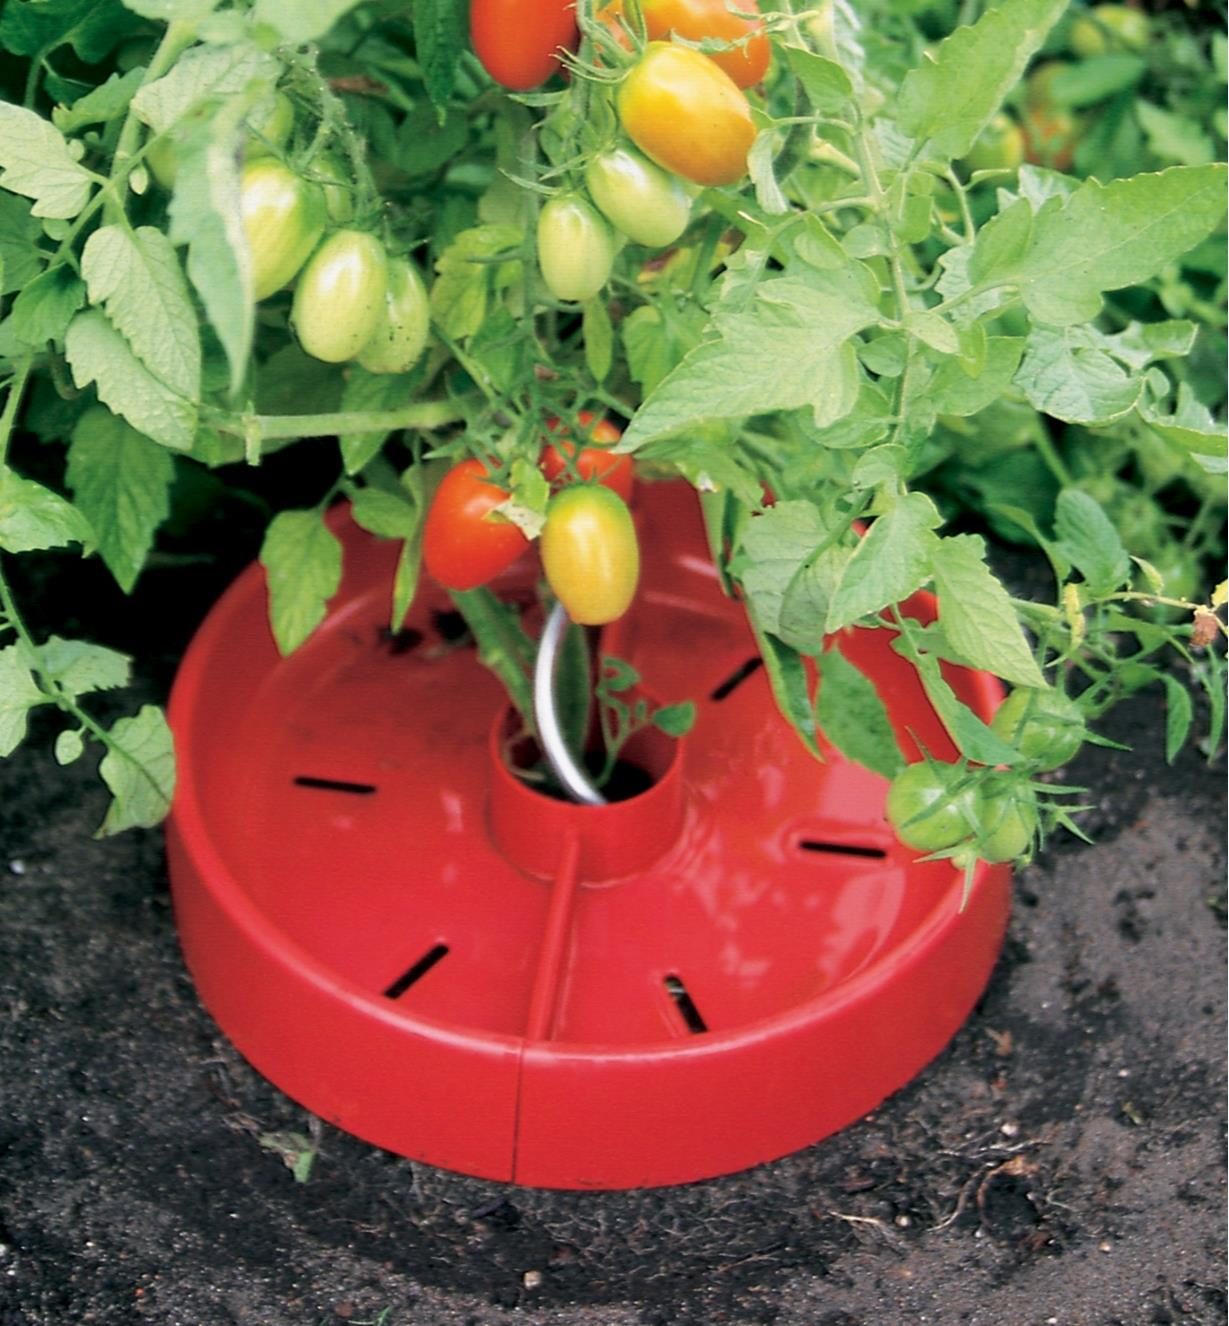 Tomato Crater placed around the stem of a tomato plant